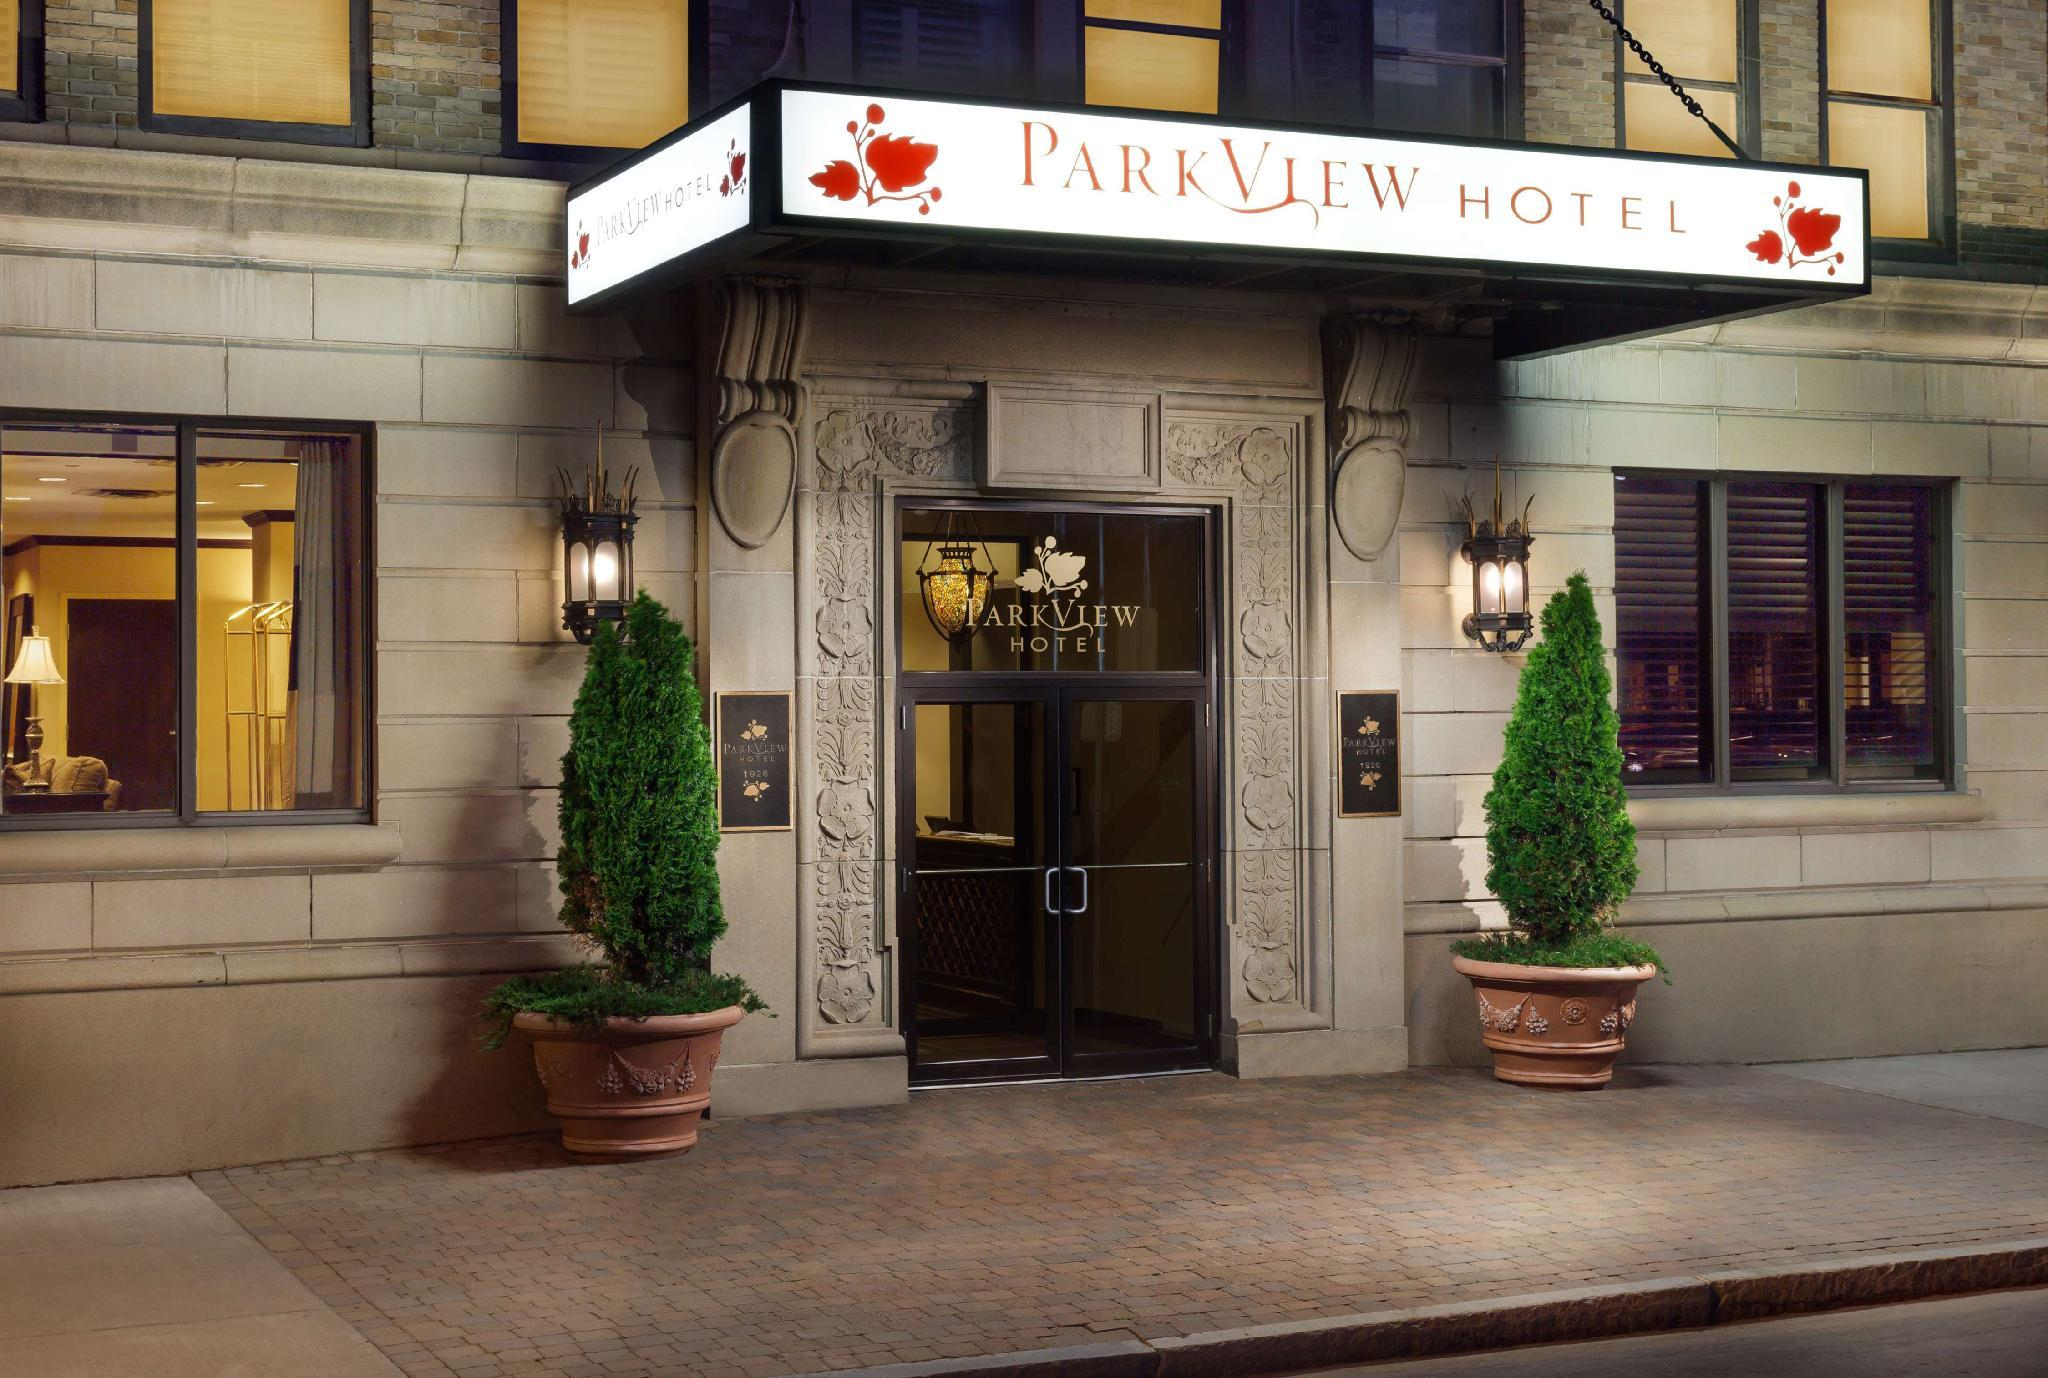 The Parkview Hotel, Best Western Premier Collection, Onondaga